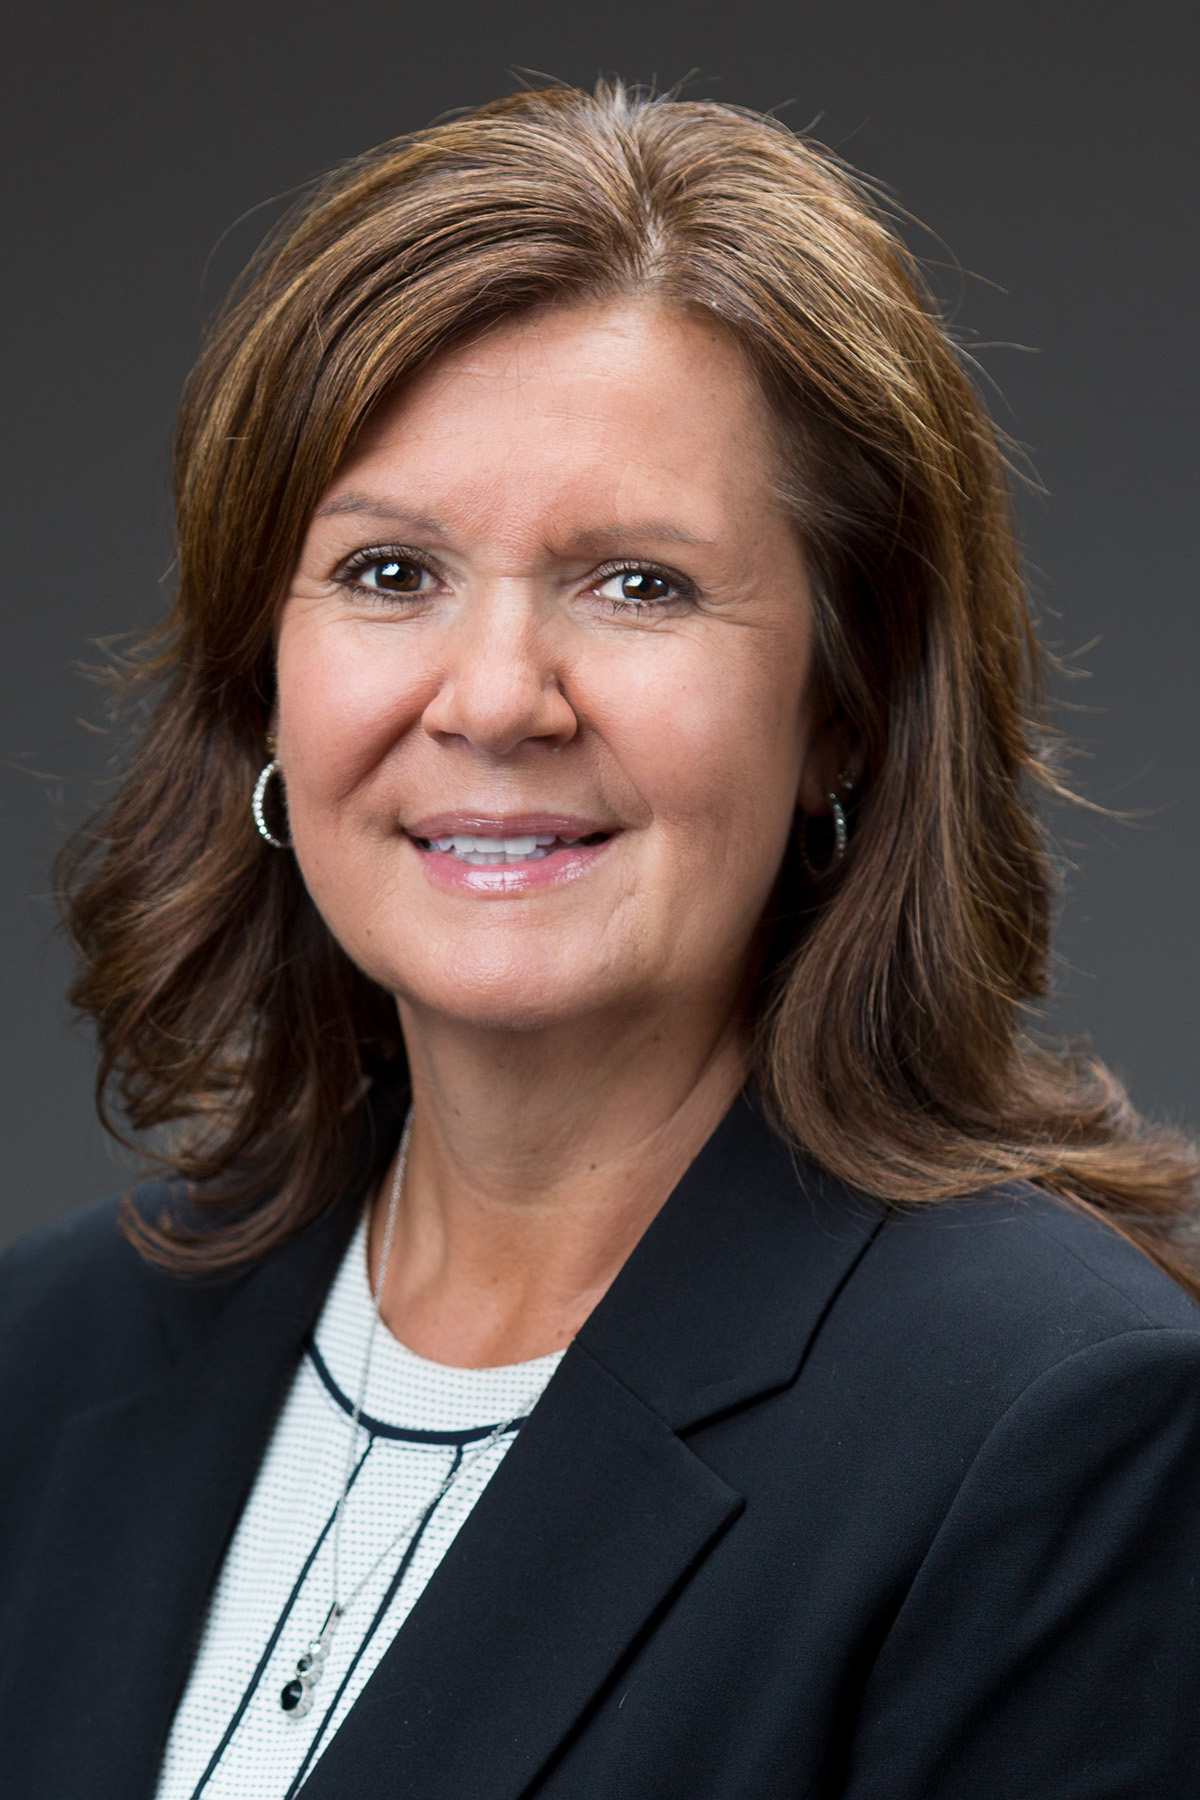 Marcia Zwanziger, Vice President of Finance and CFO of HRMC